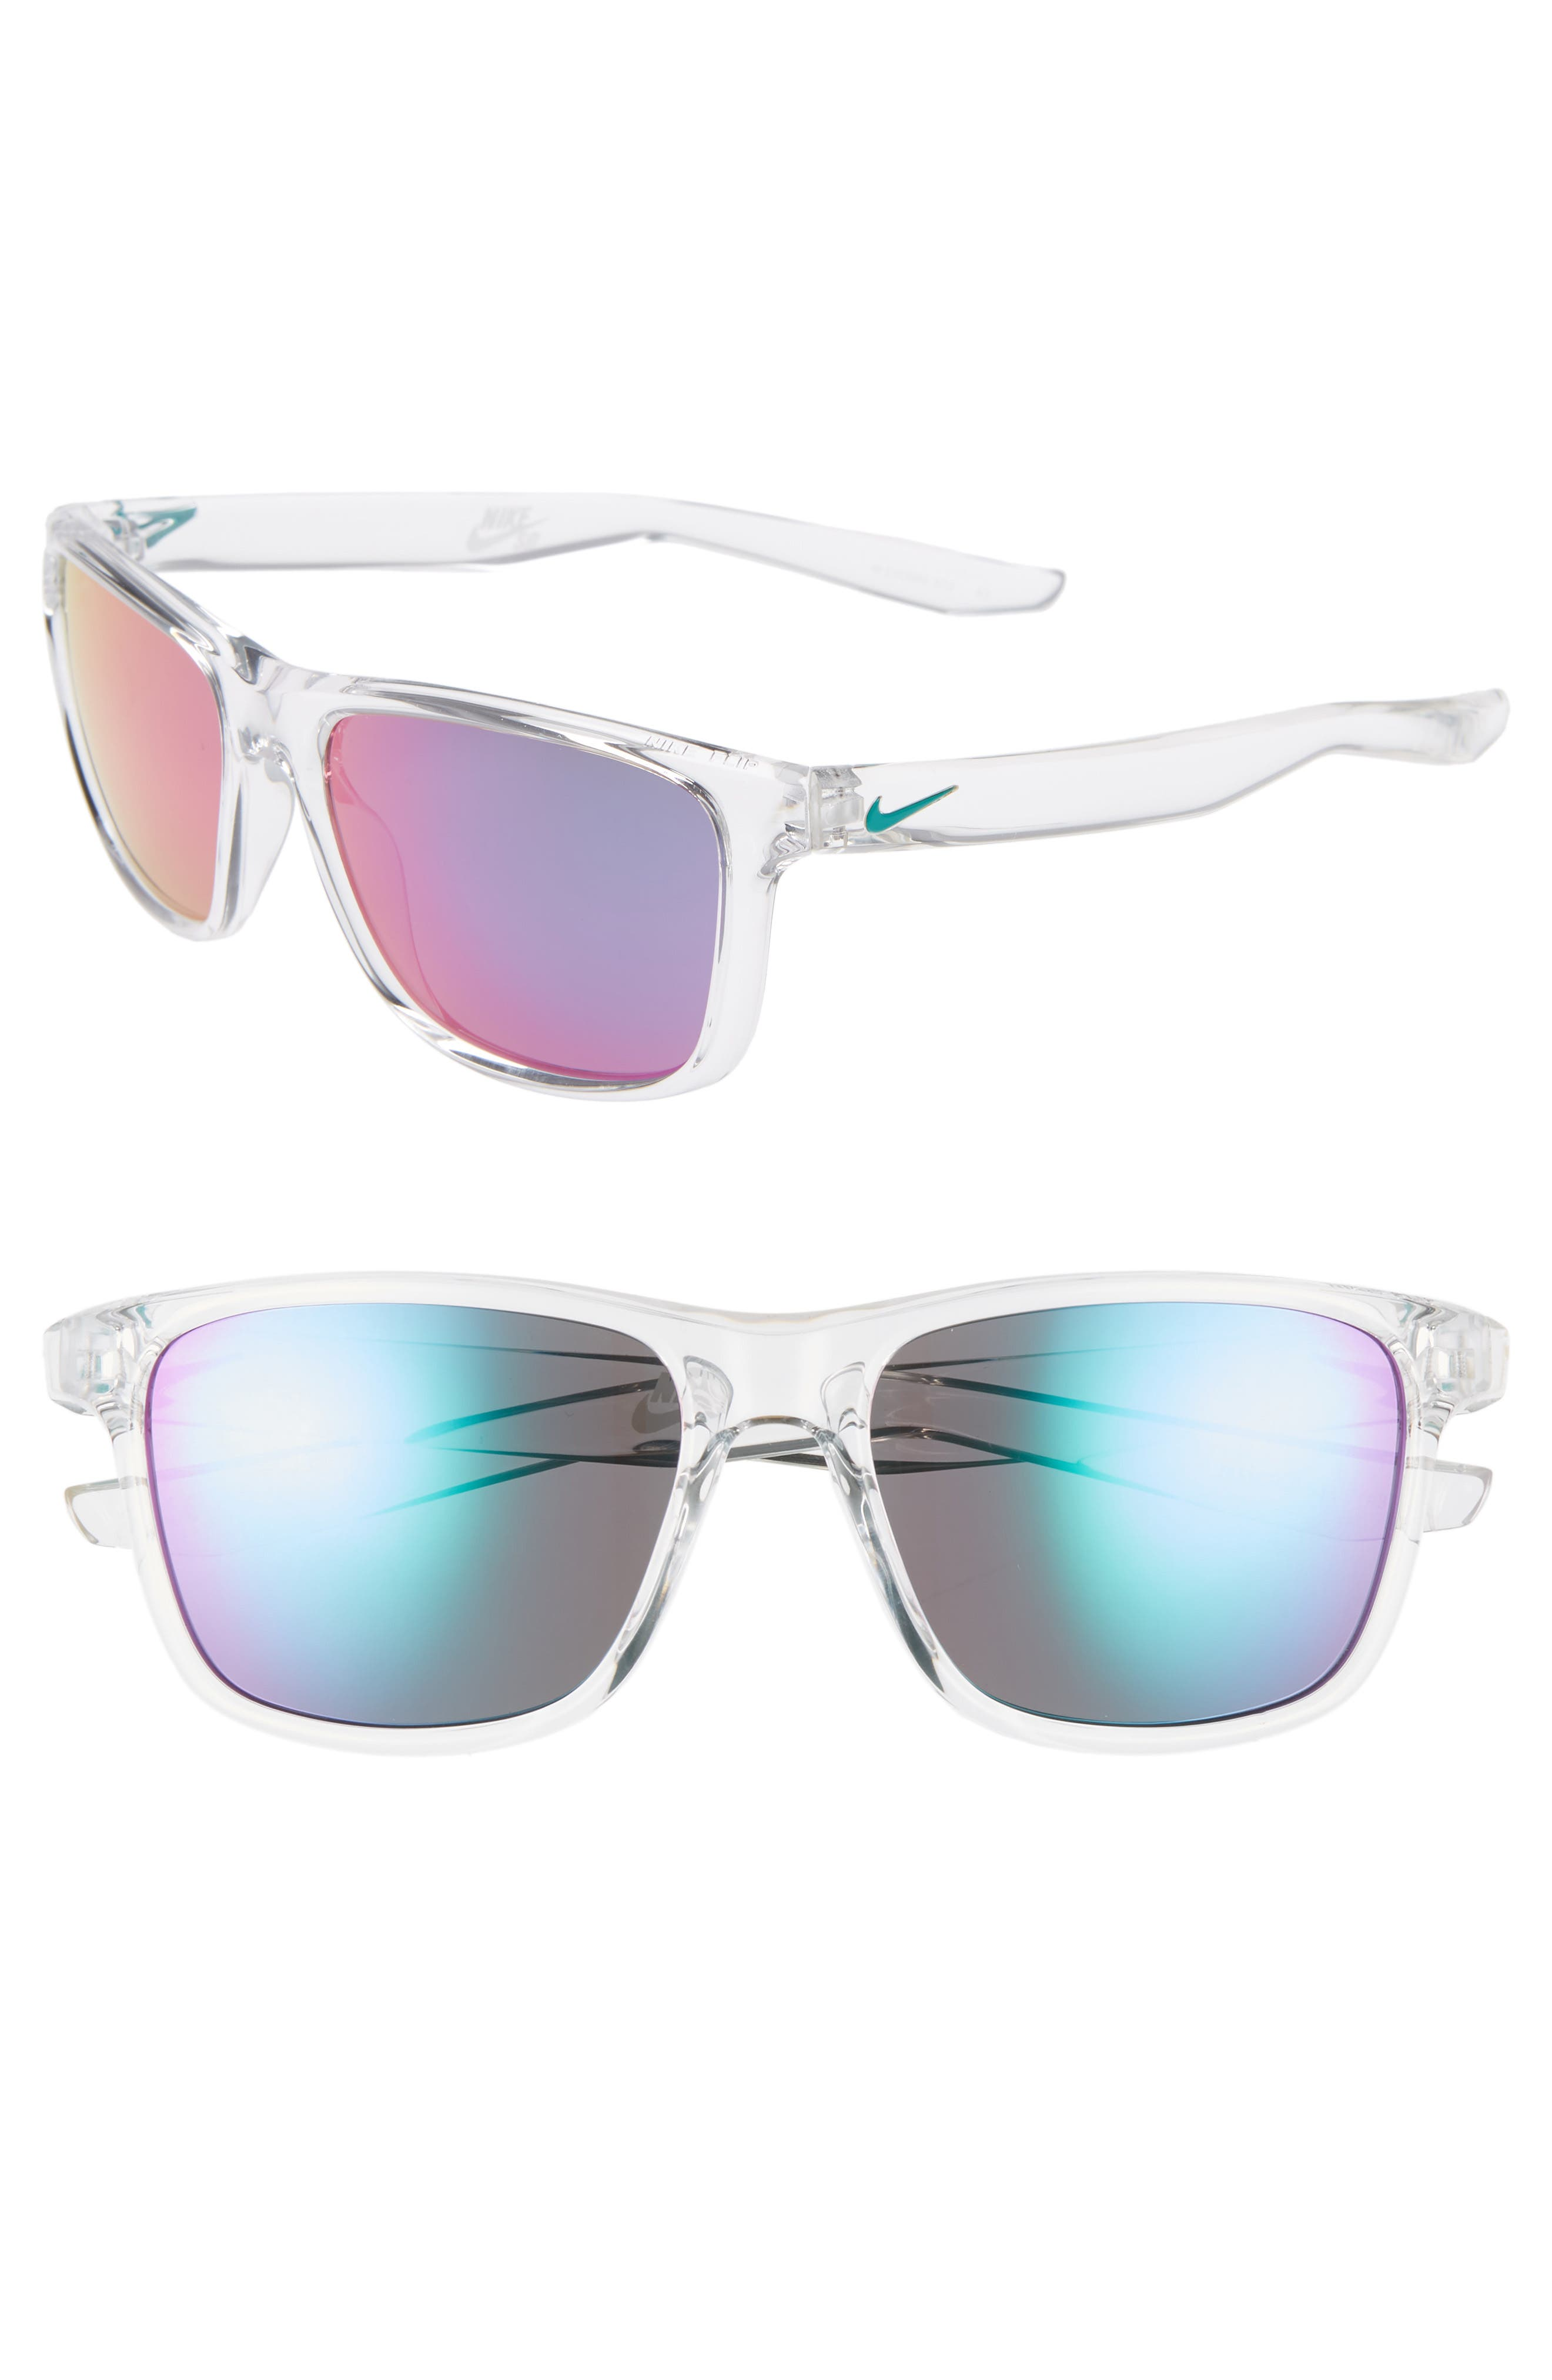 Nike Flip 5m Mirrored Sunglasses - Crystal Clear/ Pink/ Blue